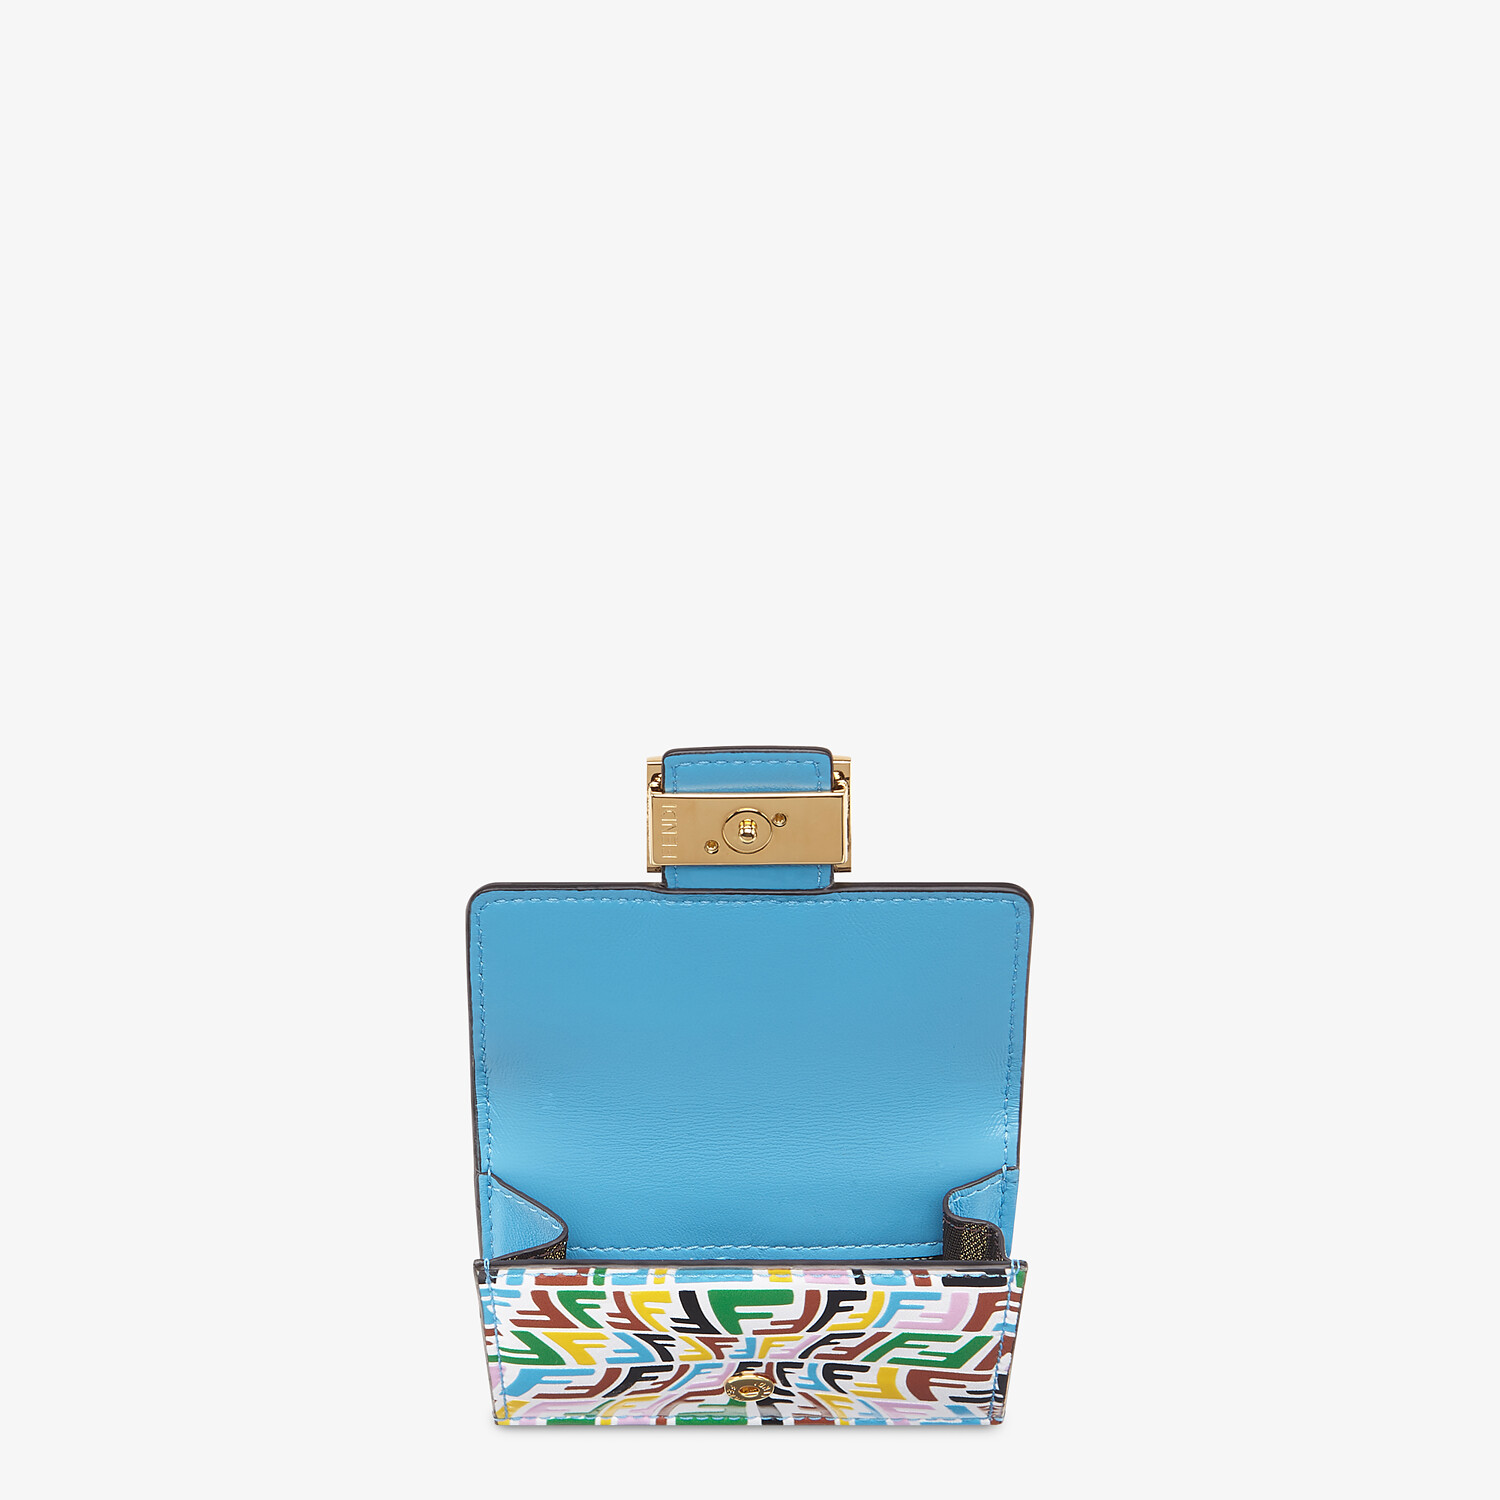 FENDI MICRO TRIFOLD - Multicolor leather wallet - view 3 detail